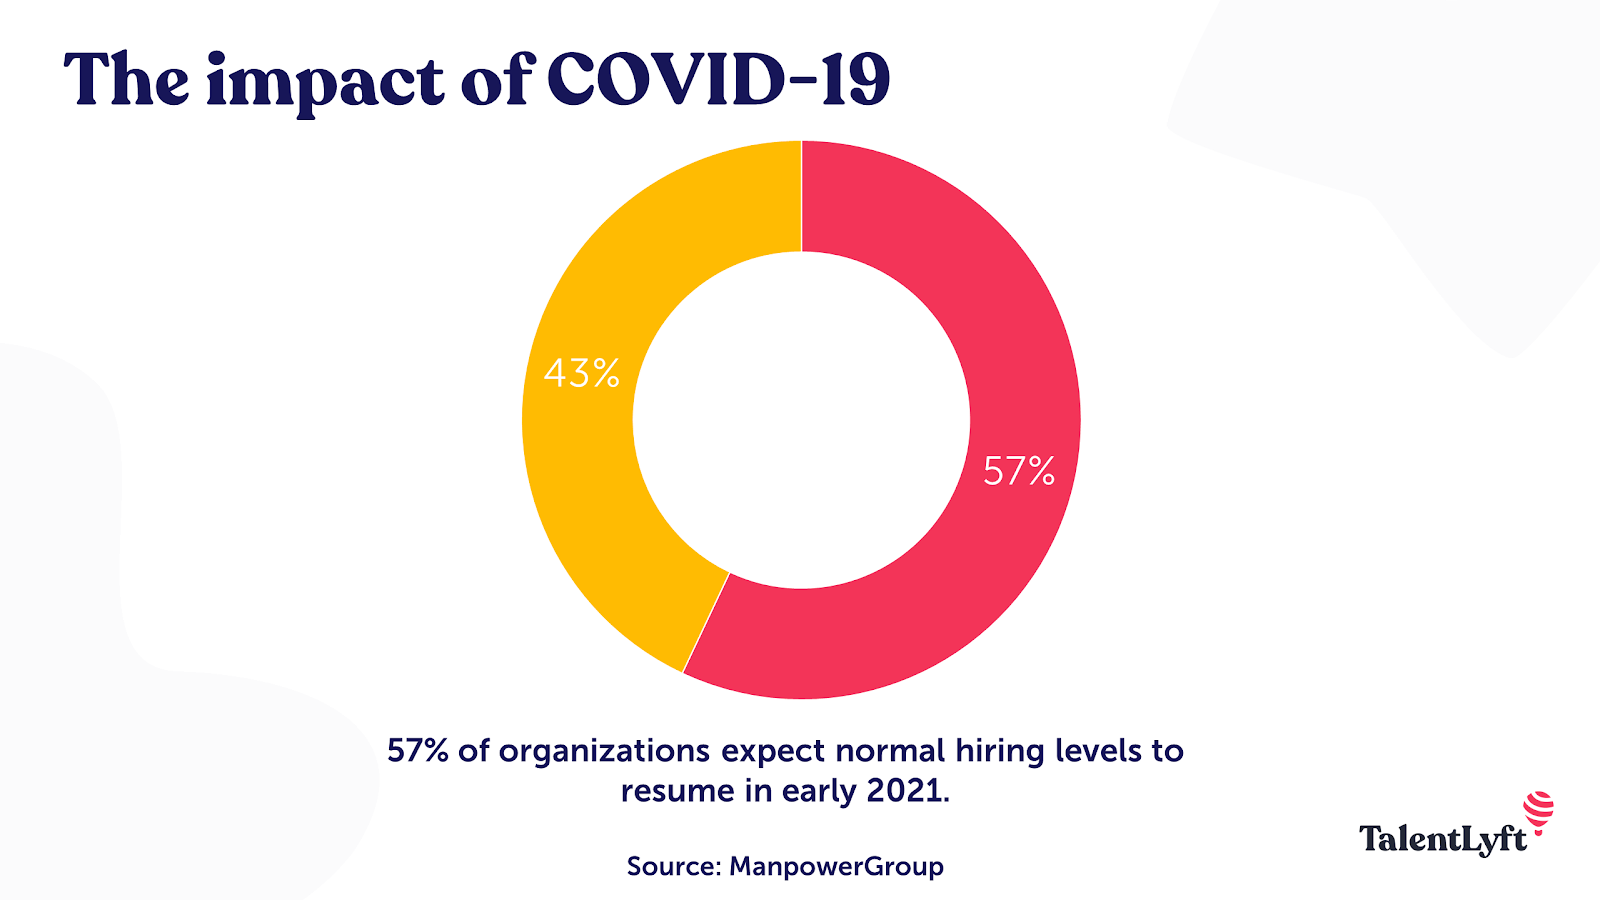 The impact of COVID-19 on recruitment